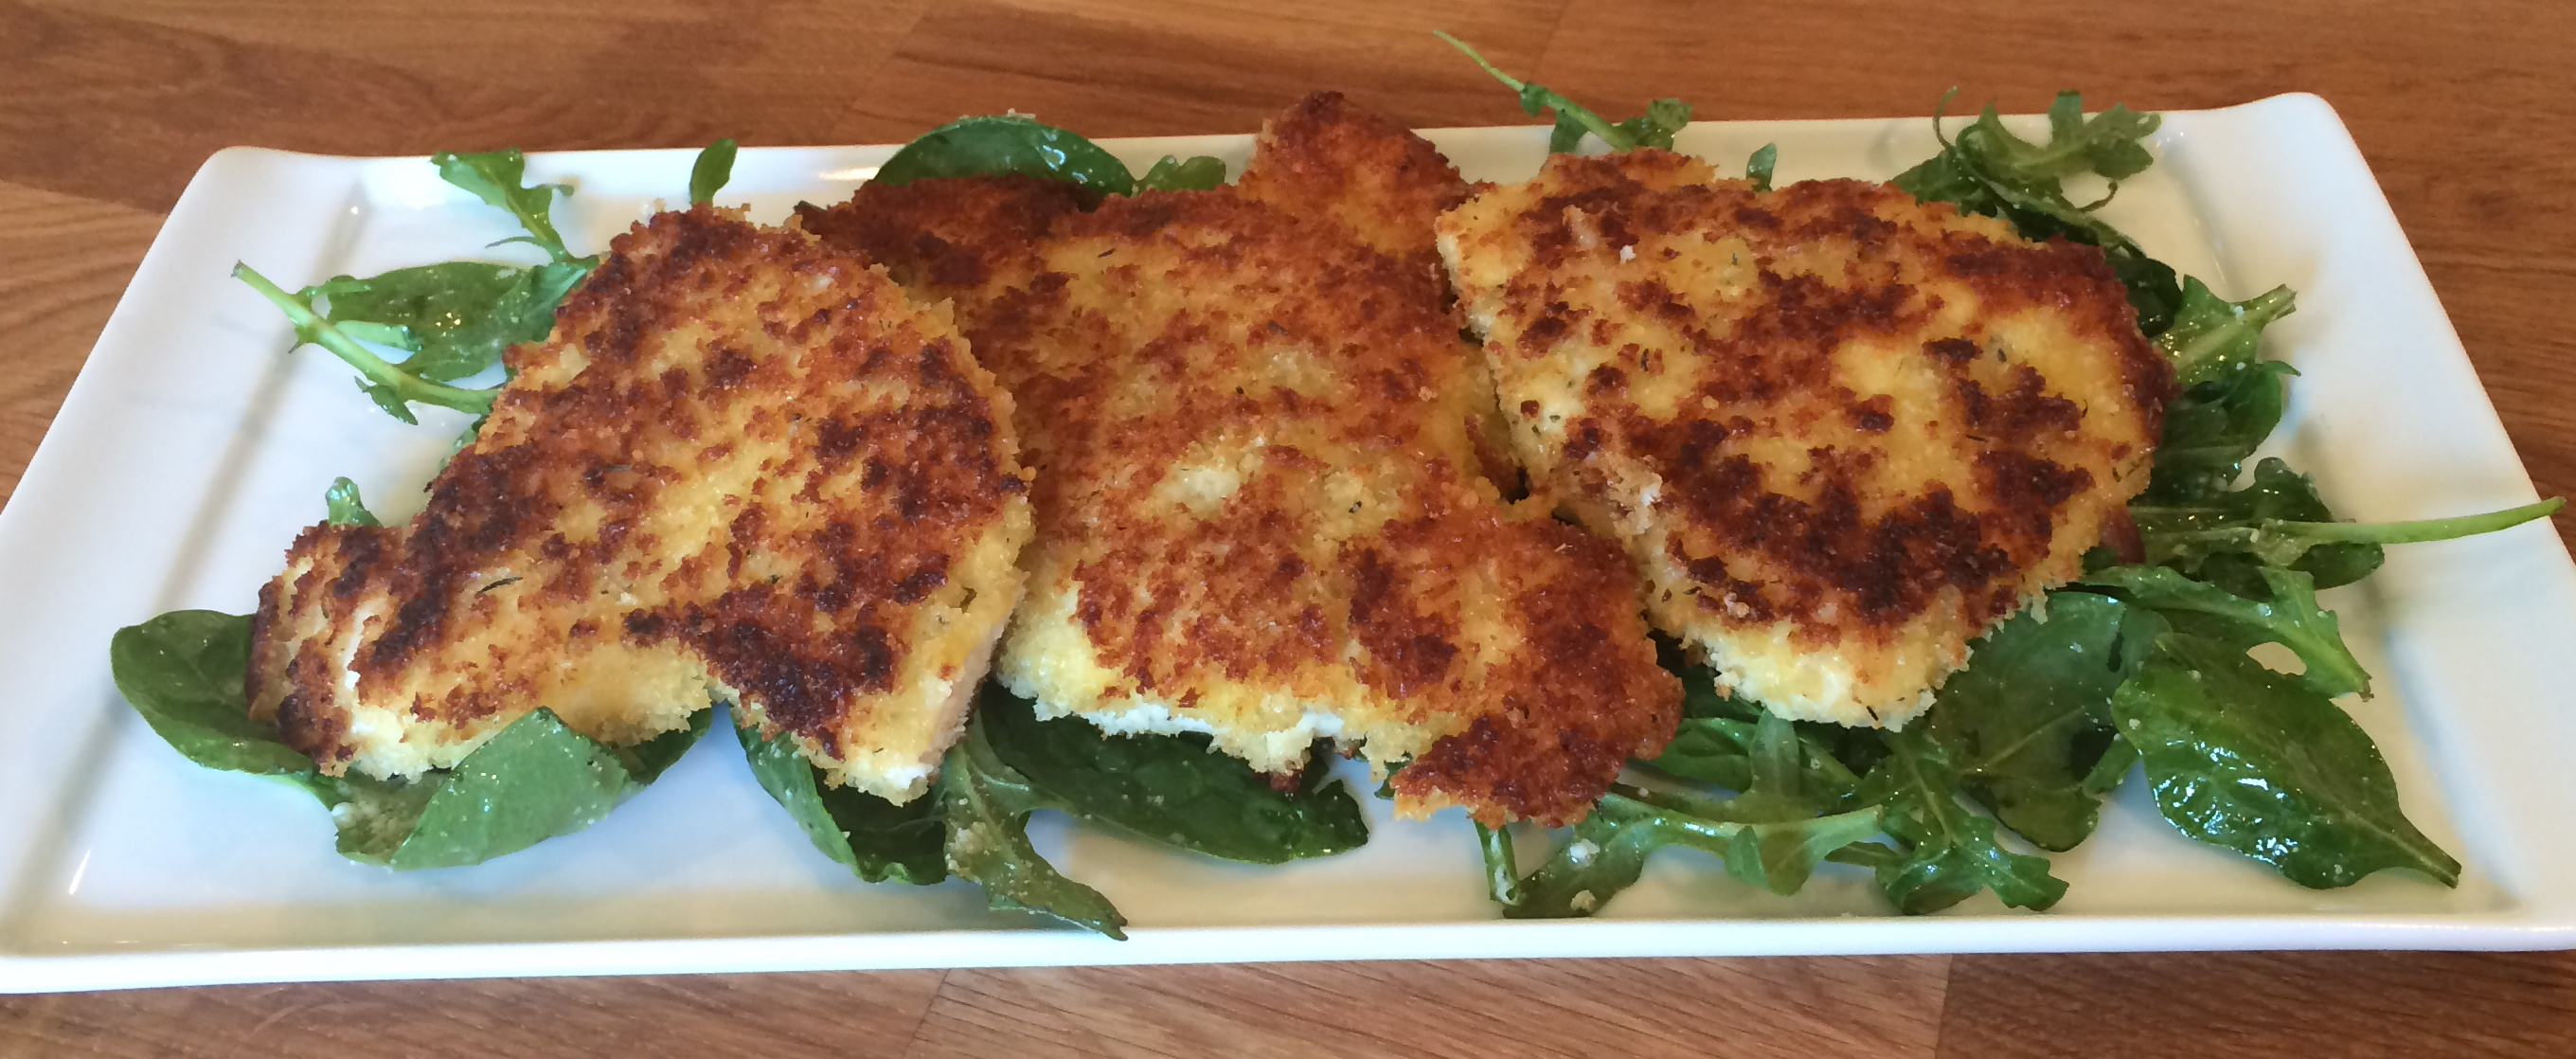 Parmesan Crusted Chicken With Arugula Salad